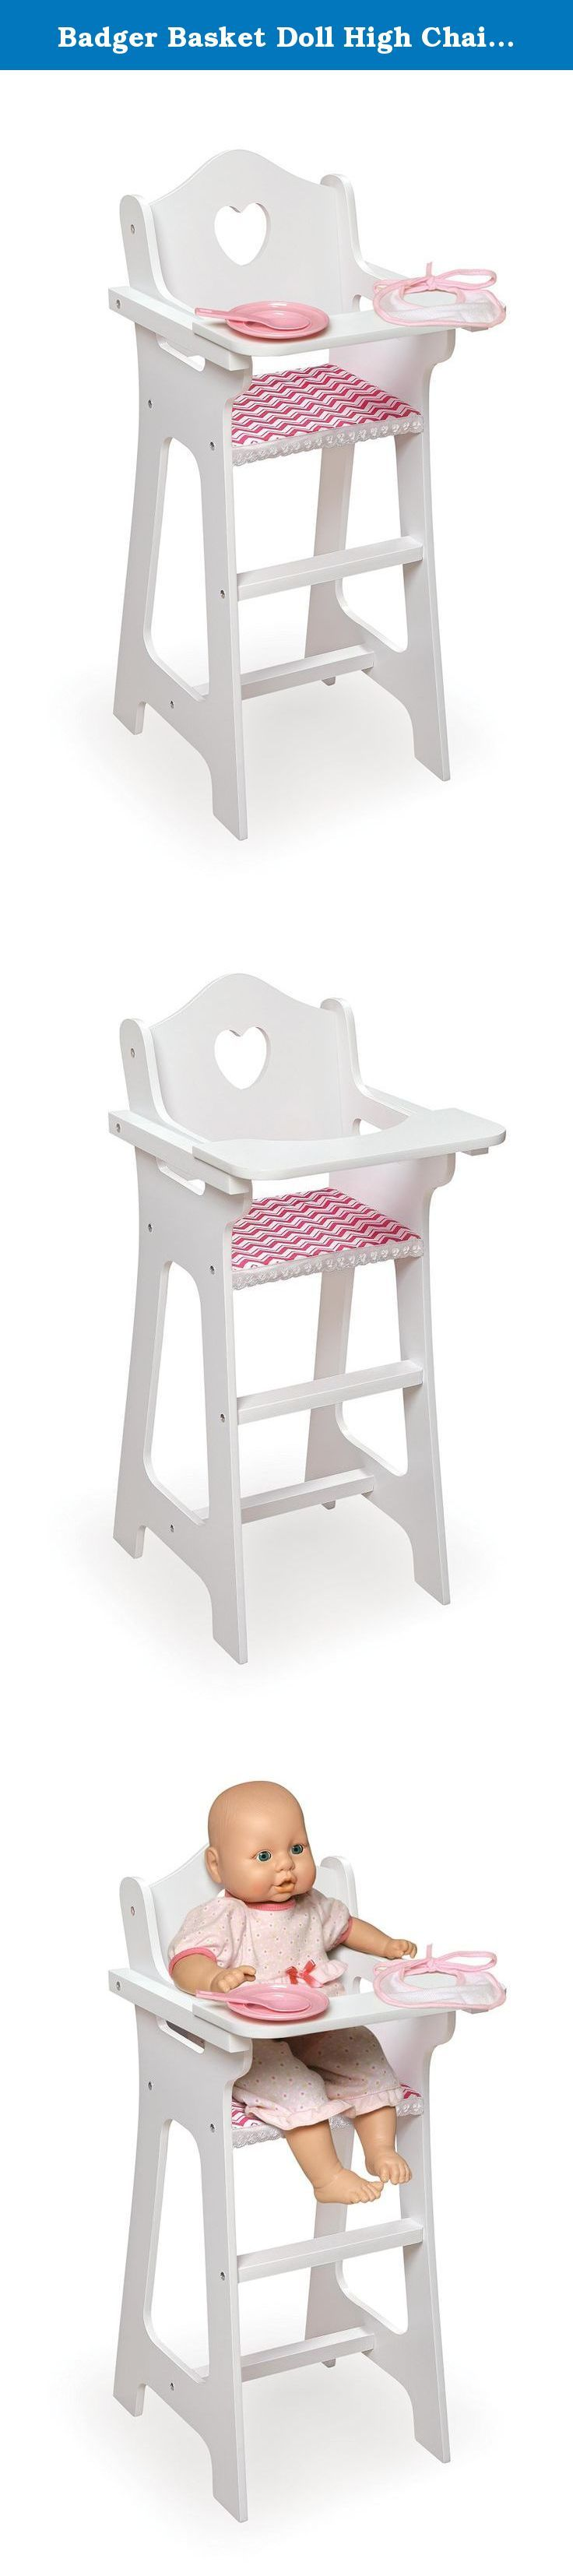 Badger Basket Doll High Chair With Plate, Bib And Spoon   Chevron Print Toy,